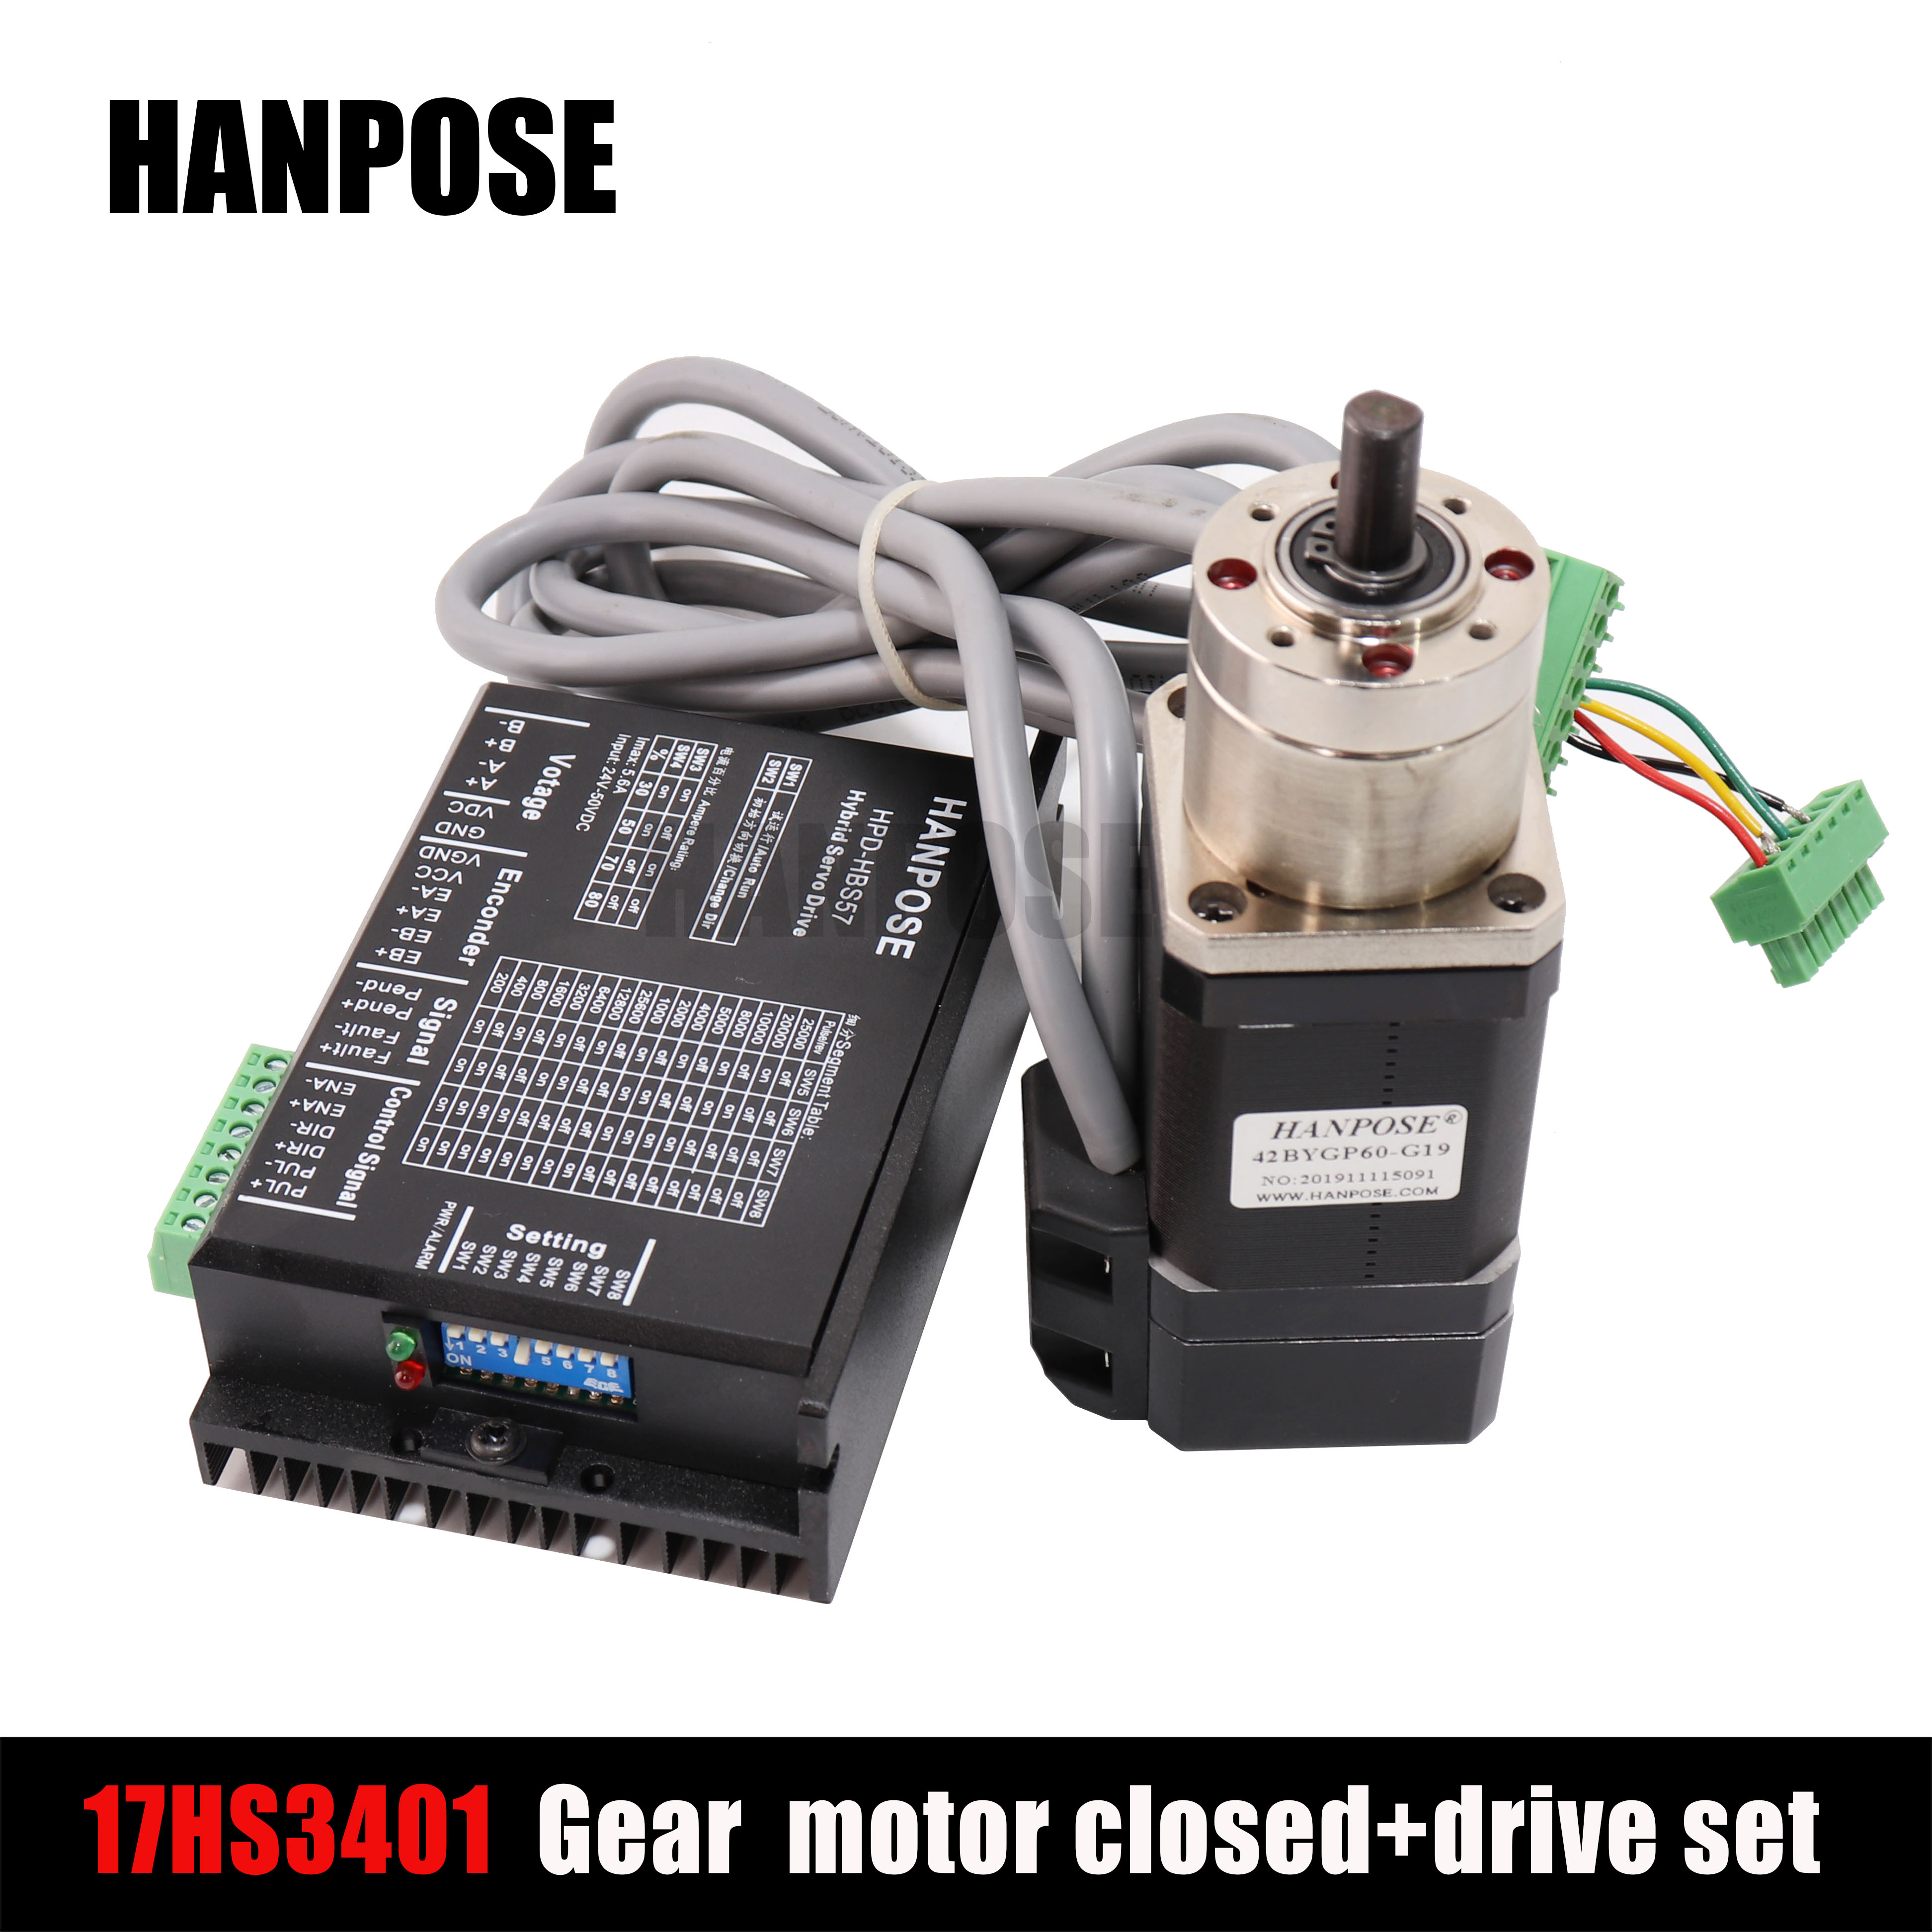 <font><b>NEMA17</b></font> PG Stepper motor deceleration closed-loop plus drive set 17hs3401 closed-loop motor planetary transmission ratio 14-1 image